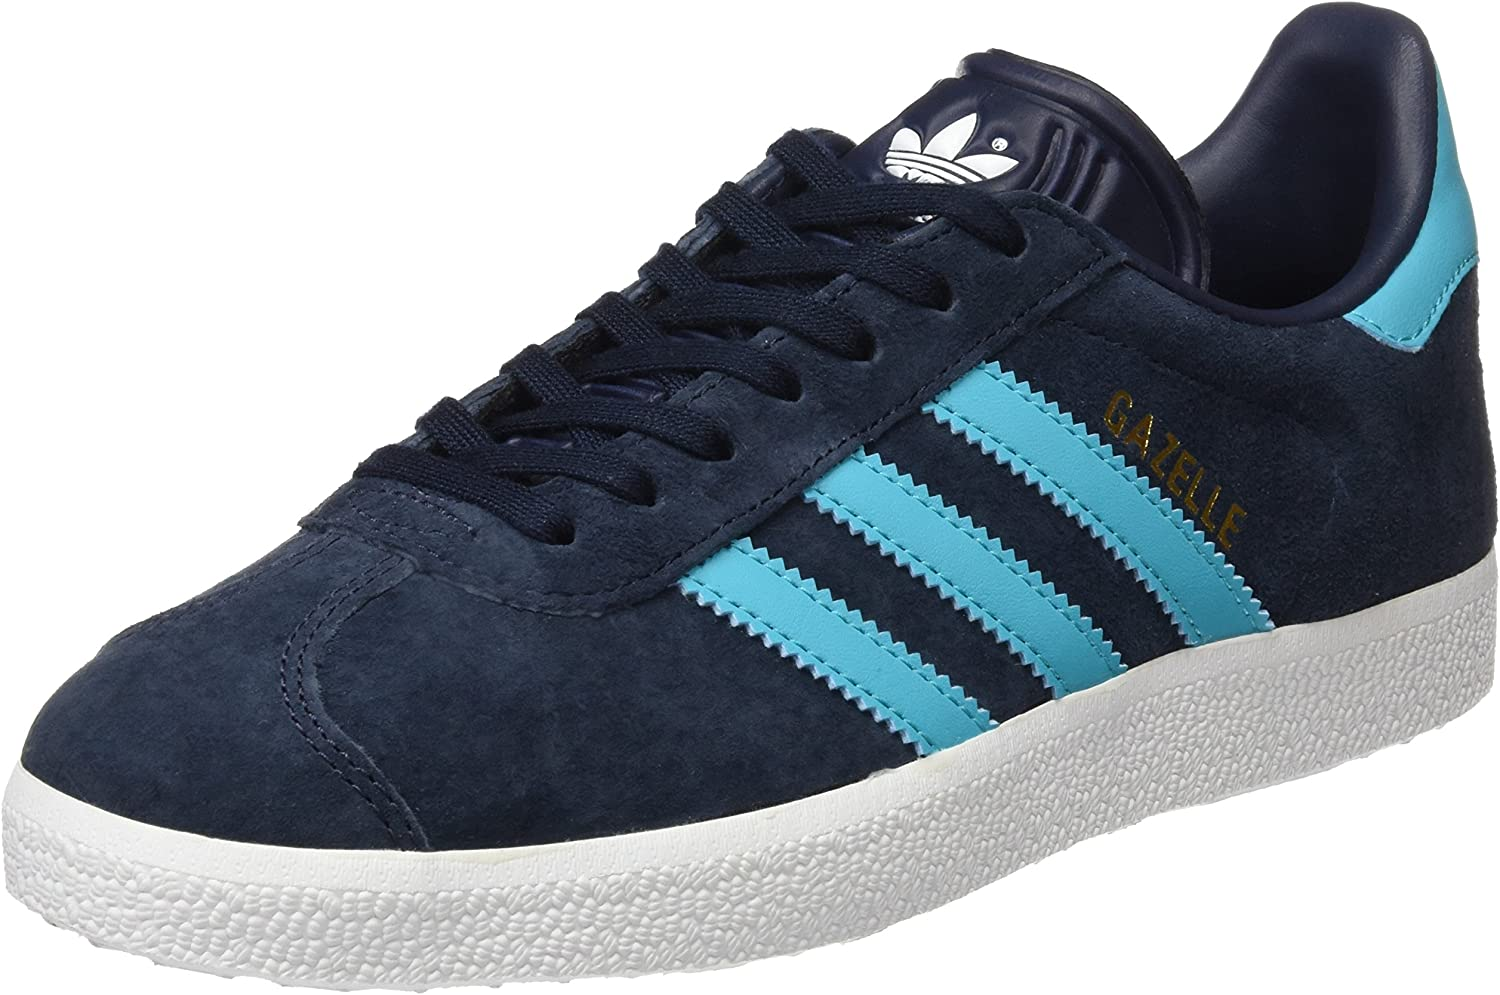 Adidas Men's Gazelle Running shoes